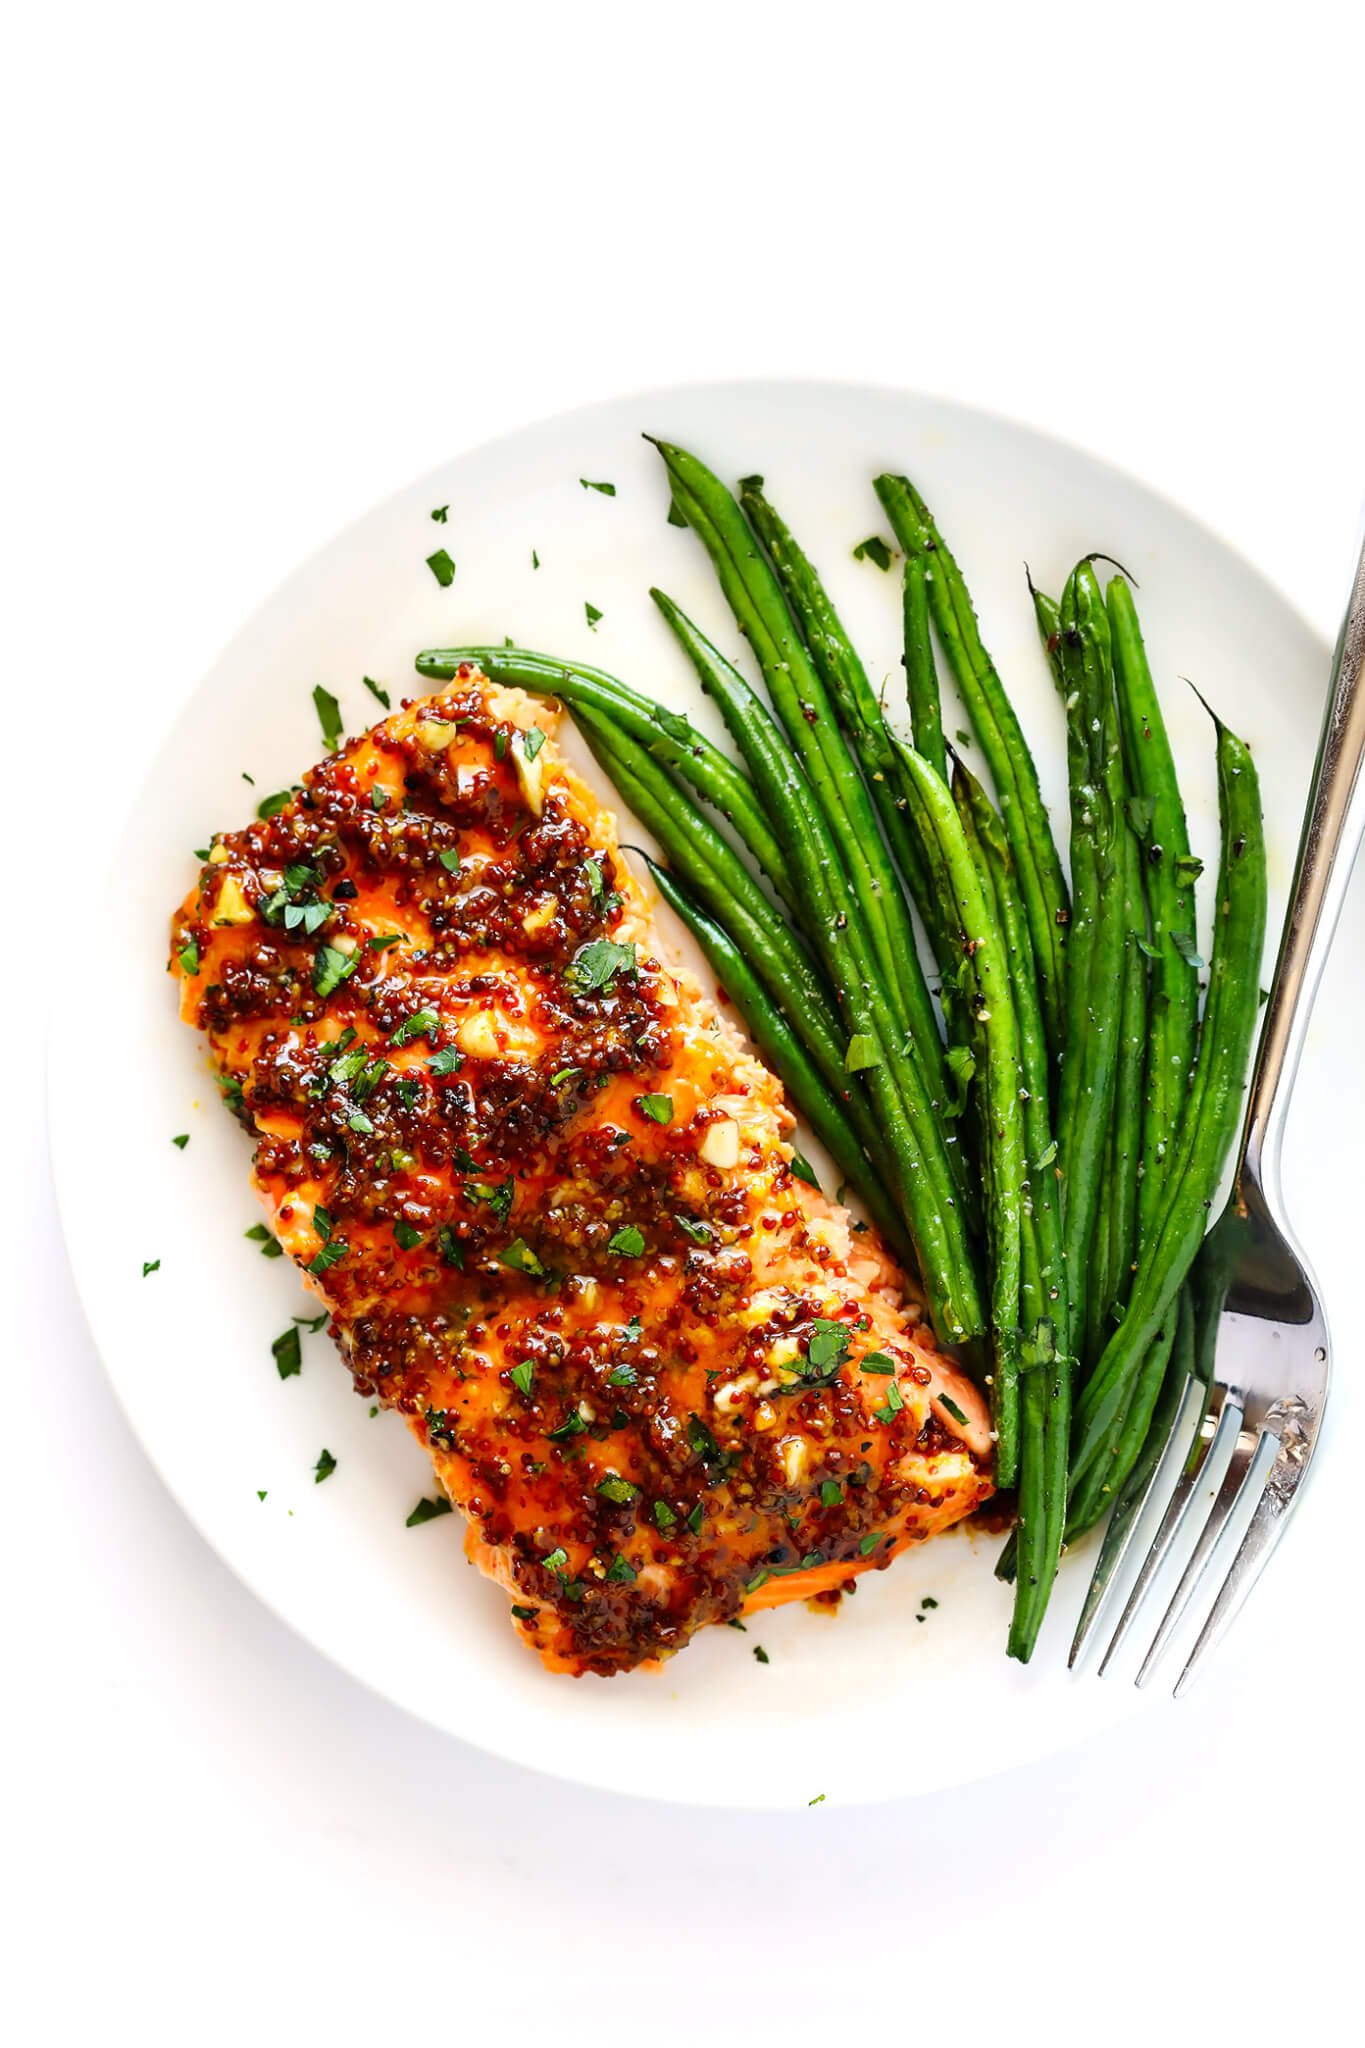 My favorite Honey-Mustard Salmon recipe!! It's made with an easy sauce full of whole grain mustard, honey, lemon juice, garlic and seasonings, and it's easy to bake in the oven or grill! | gimmesomeoven.com (Gluten-Free / Pescetarian)